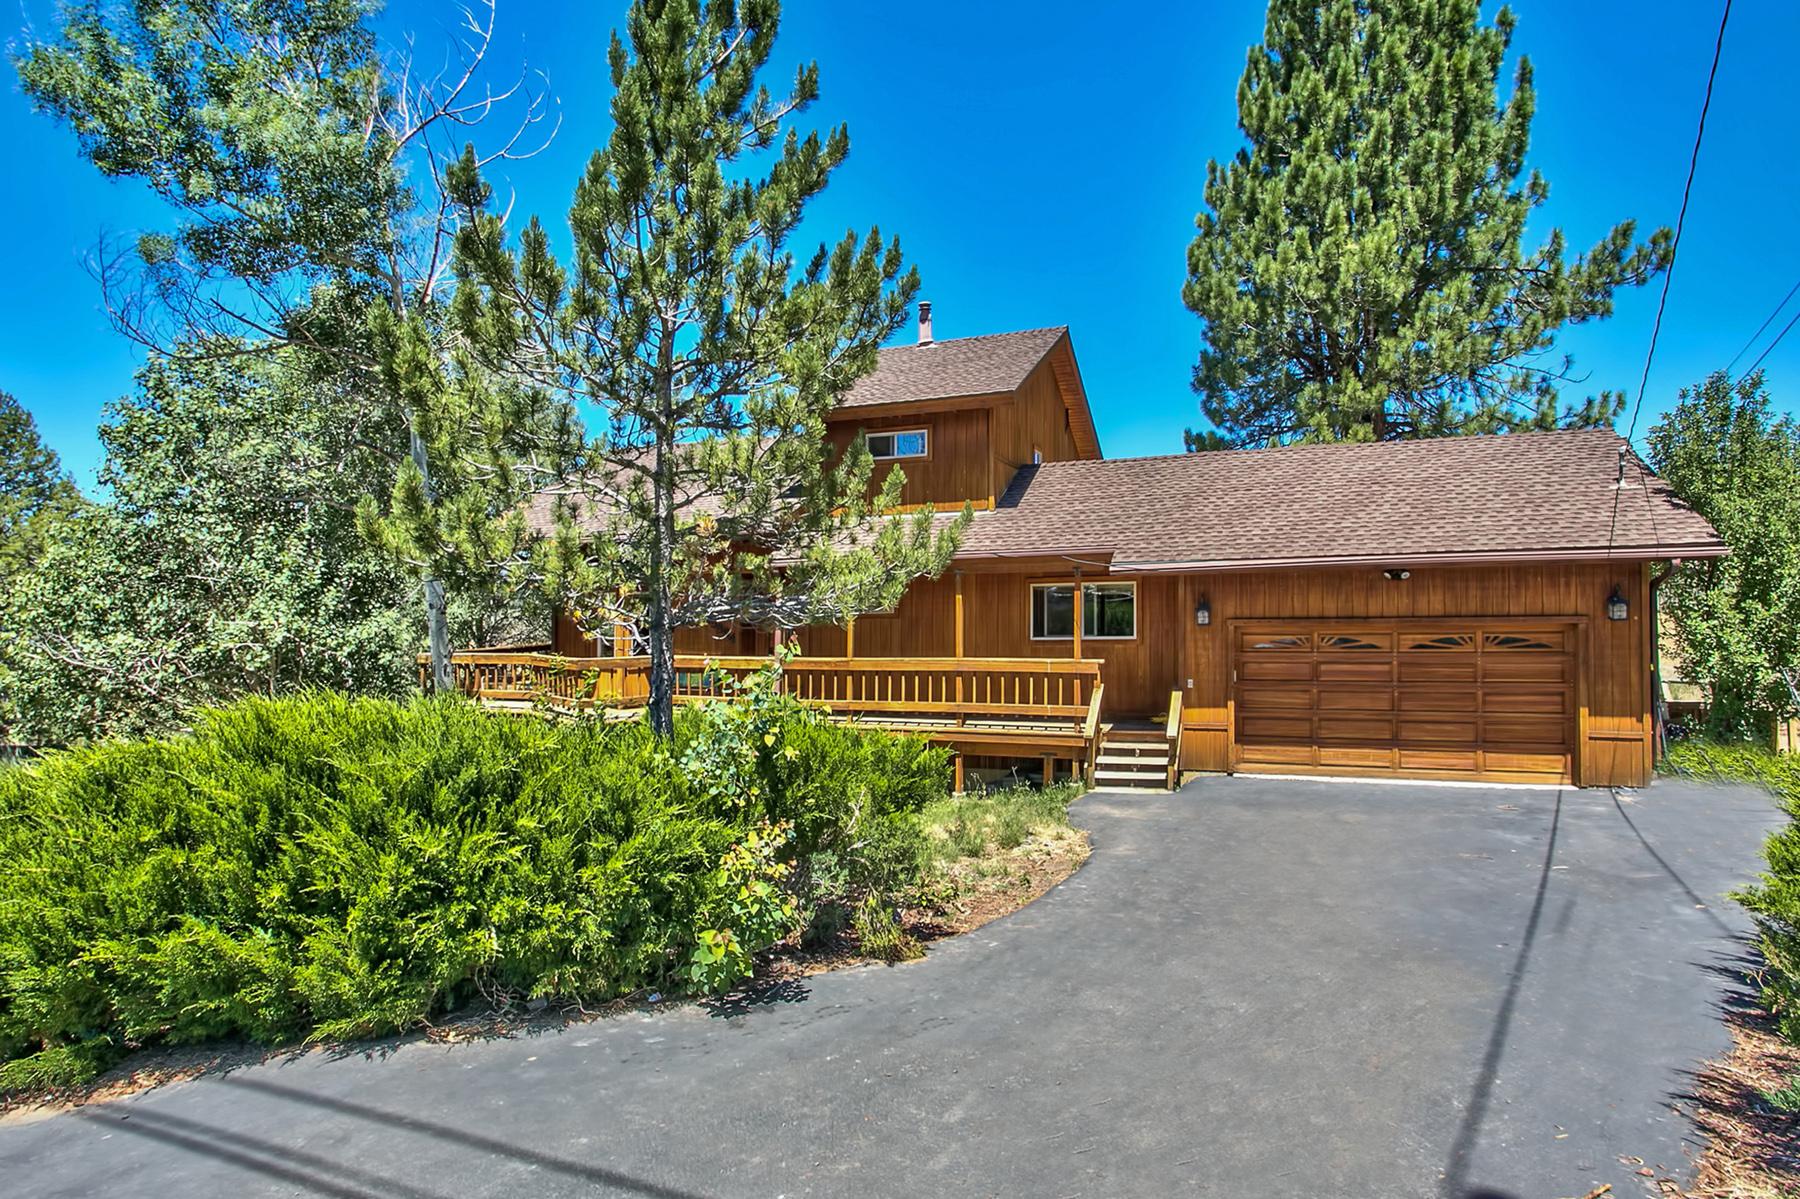 Single Family Home for Active at 15894 Wellington Way Truckee, California 96161 United States